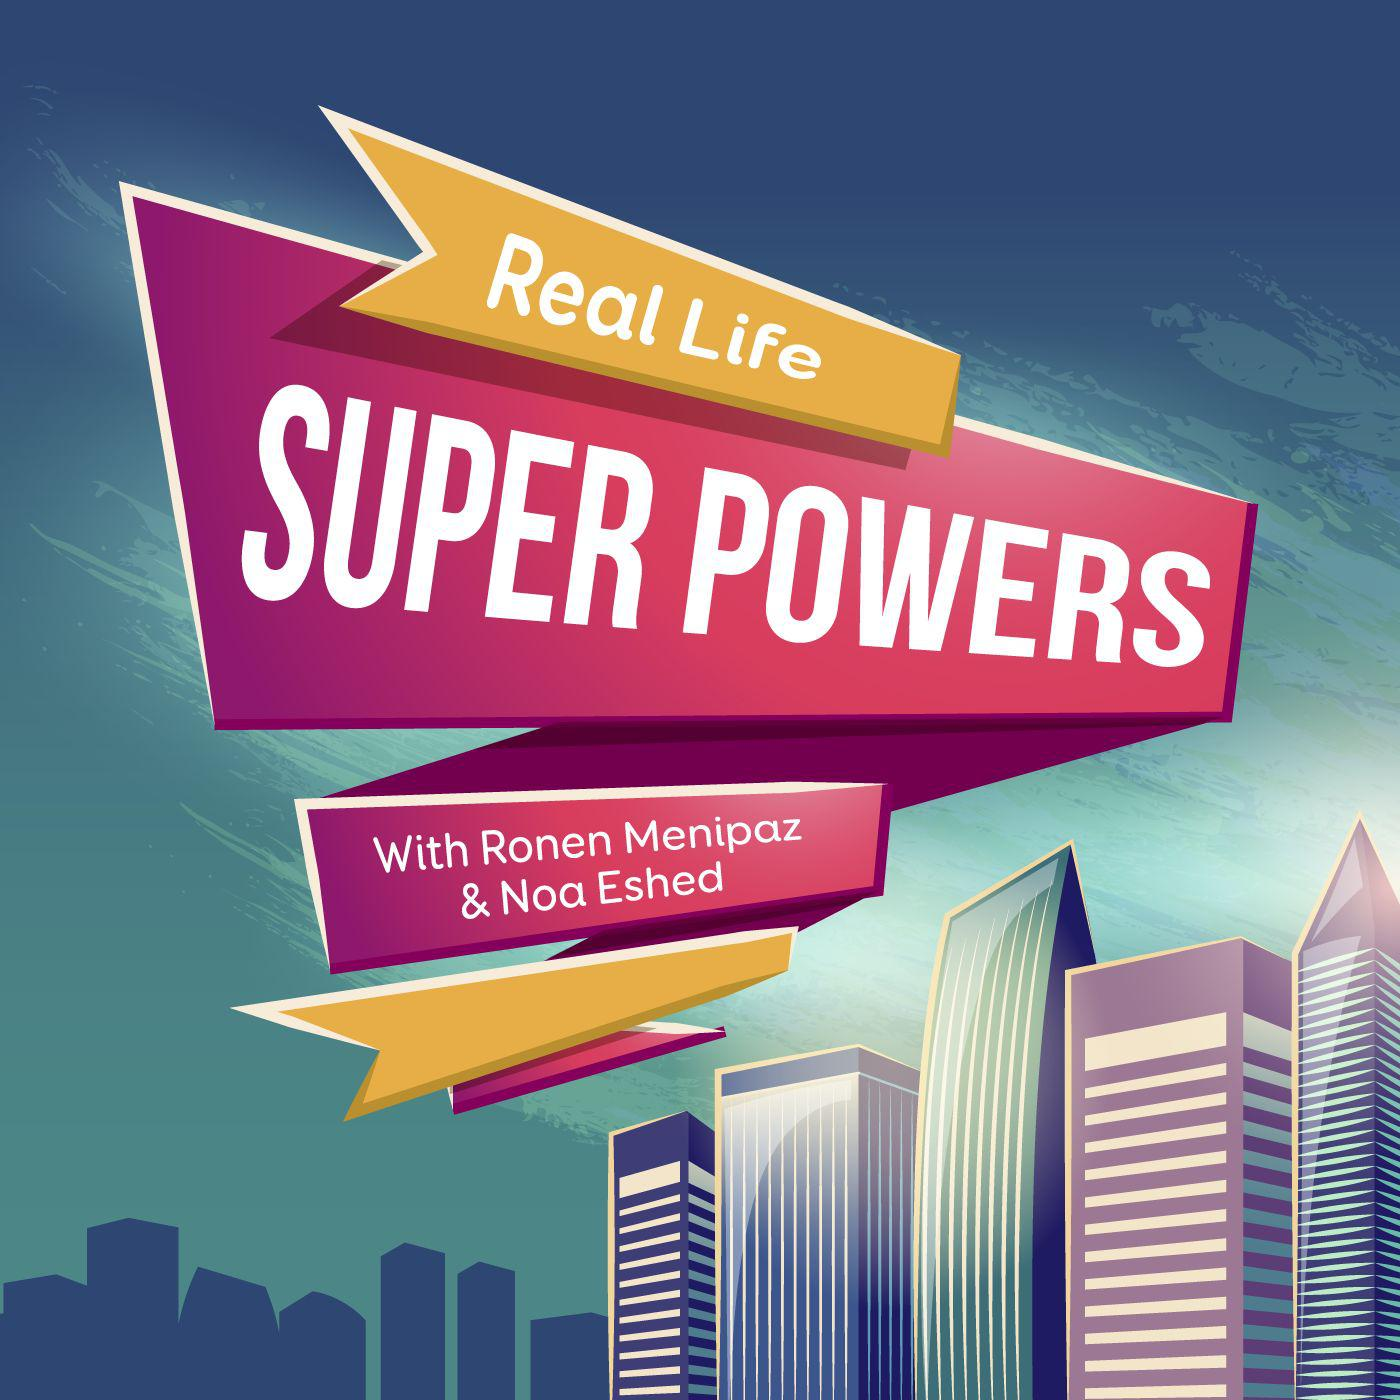 Real Life Superpowers (podcast) - Real Life Superpowers